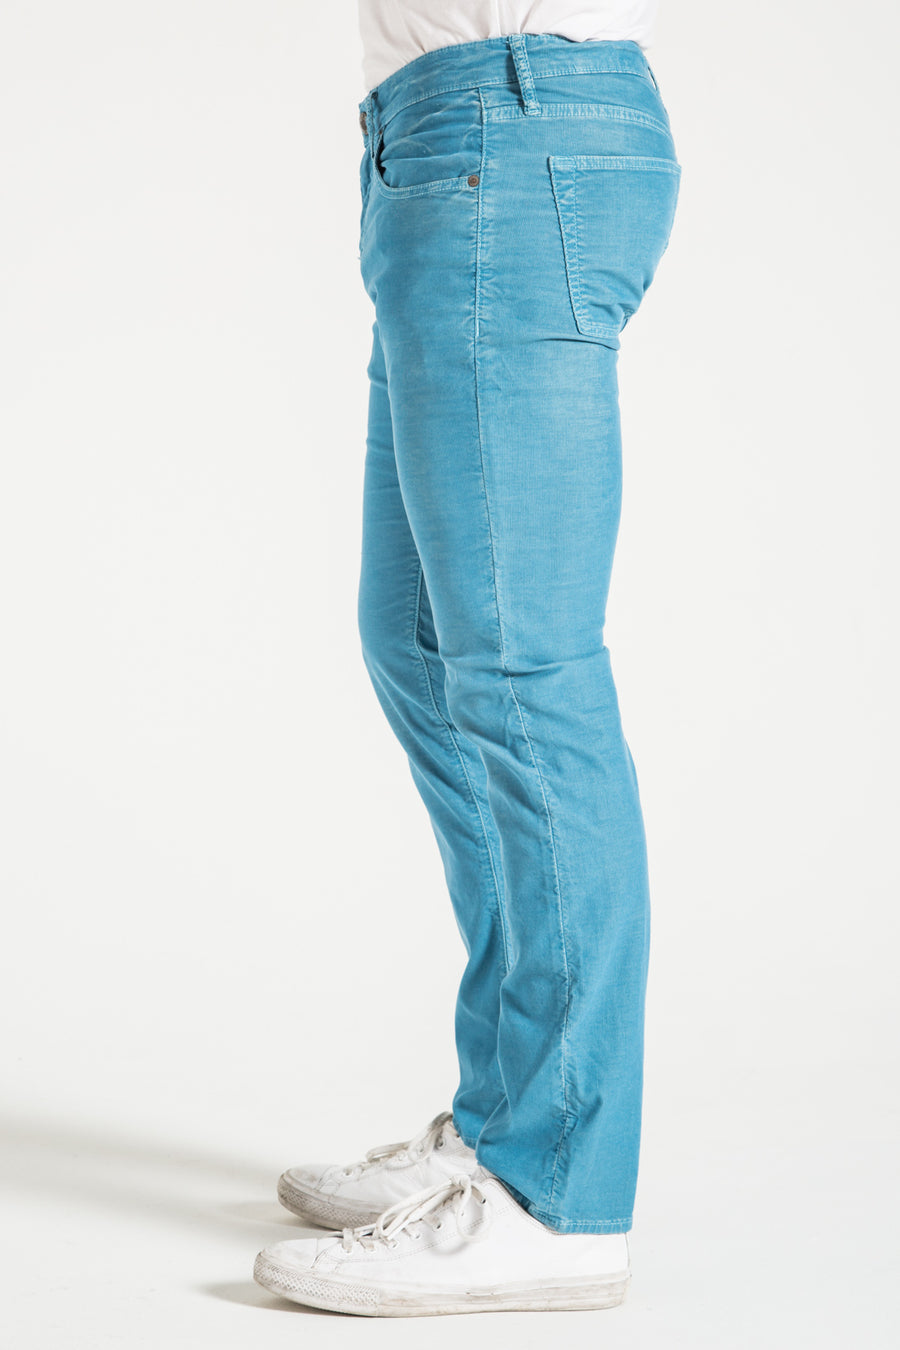 BARFLY SLIM IN TURQUOISE CORDUROY